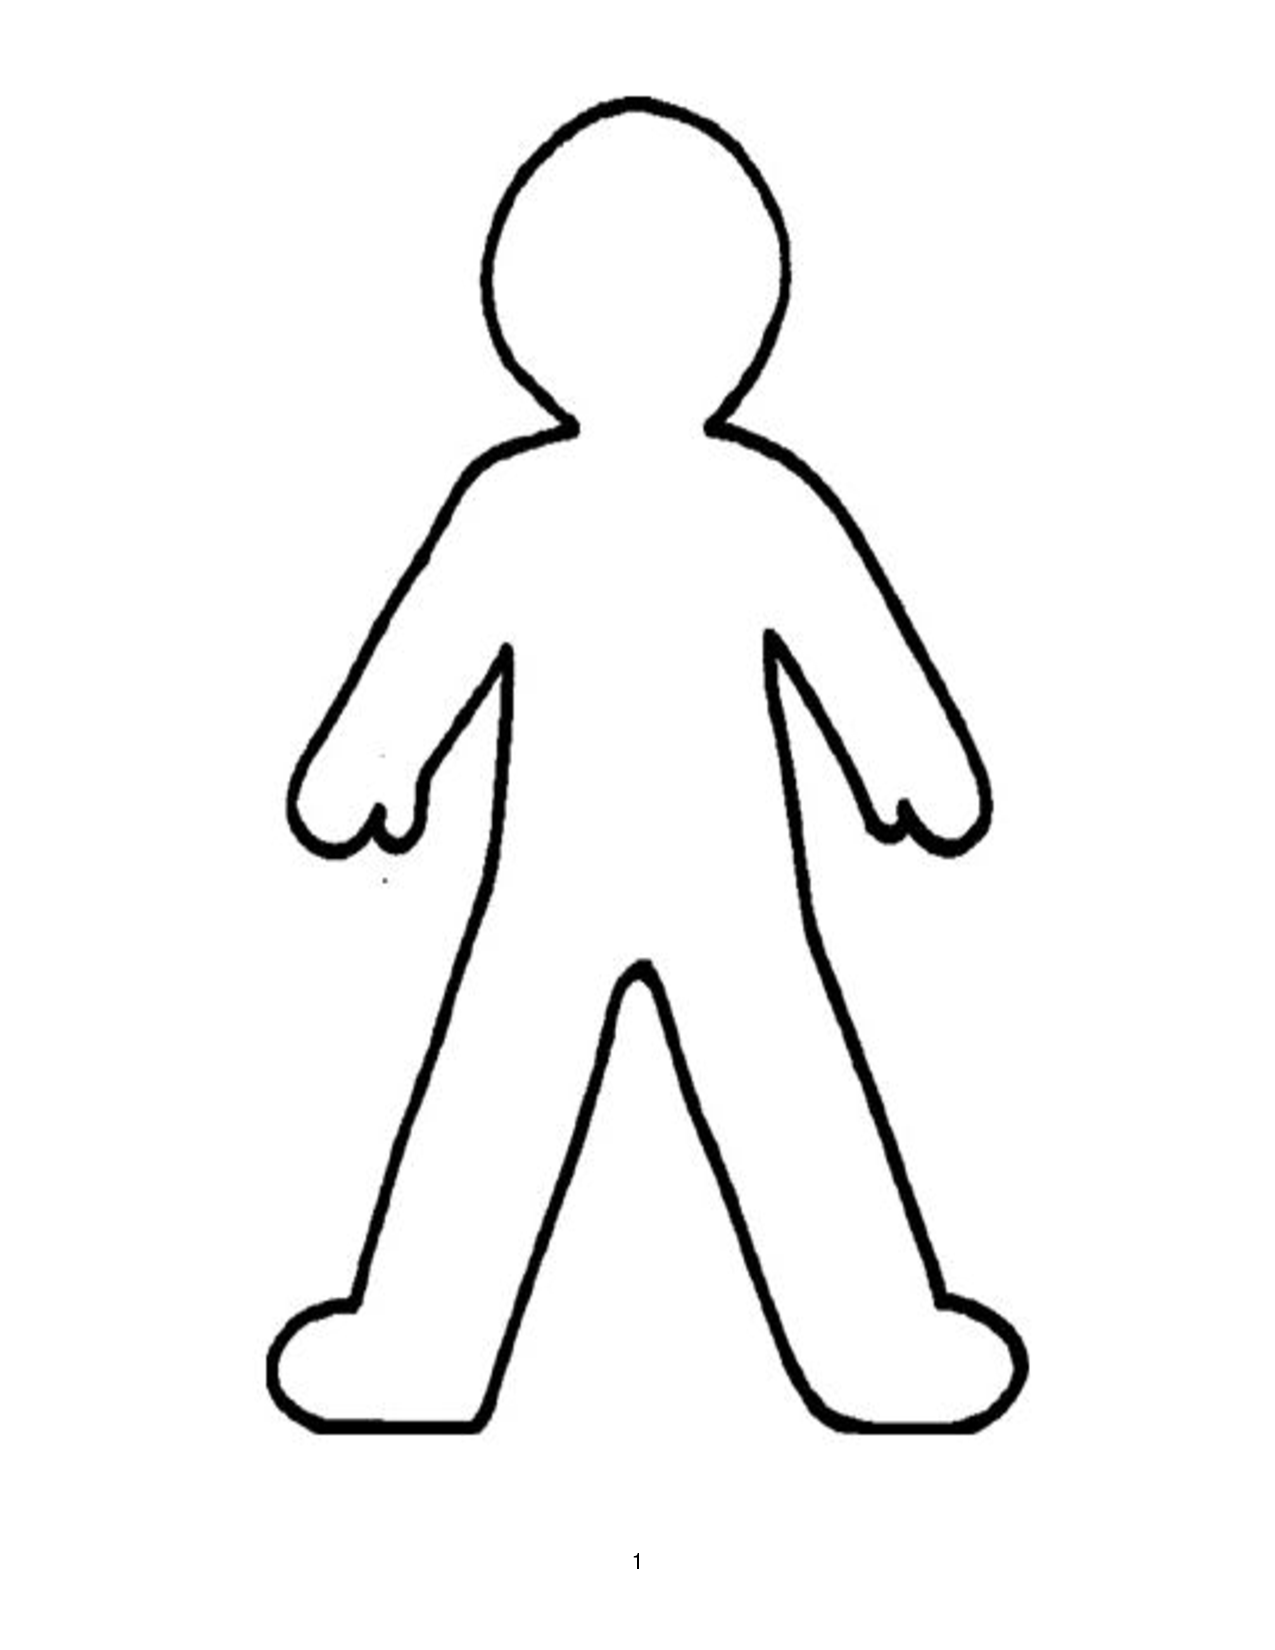 Shoulder clipart body outline ClipArt Download  School here